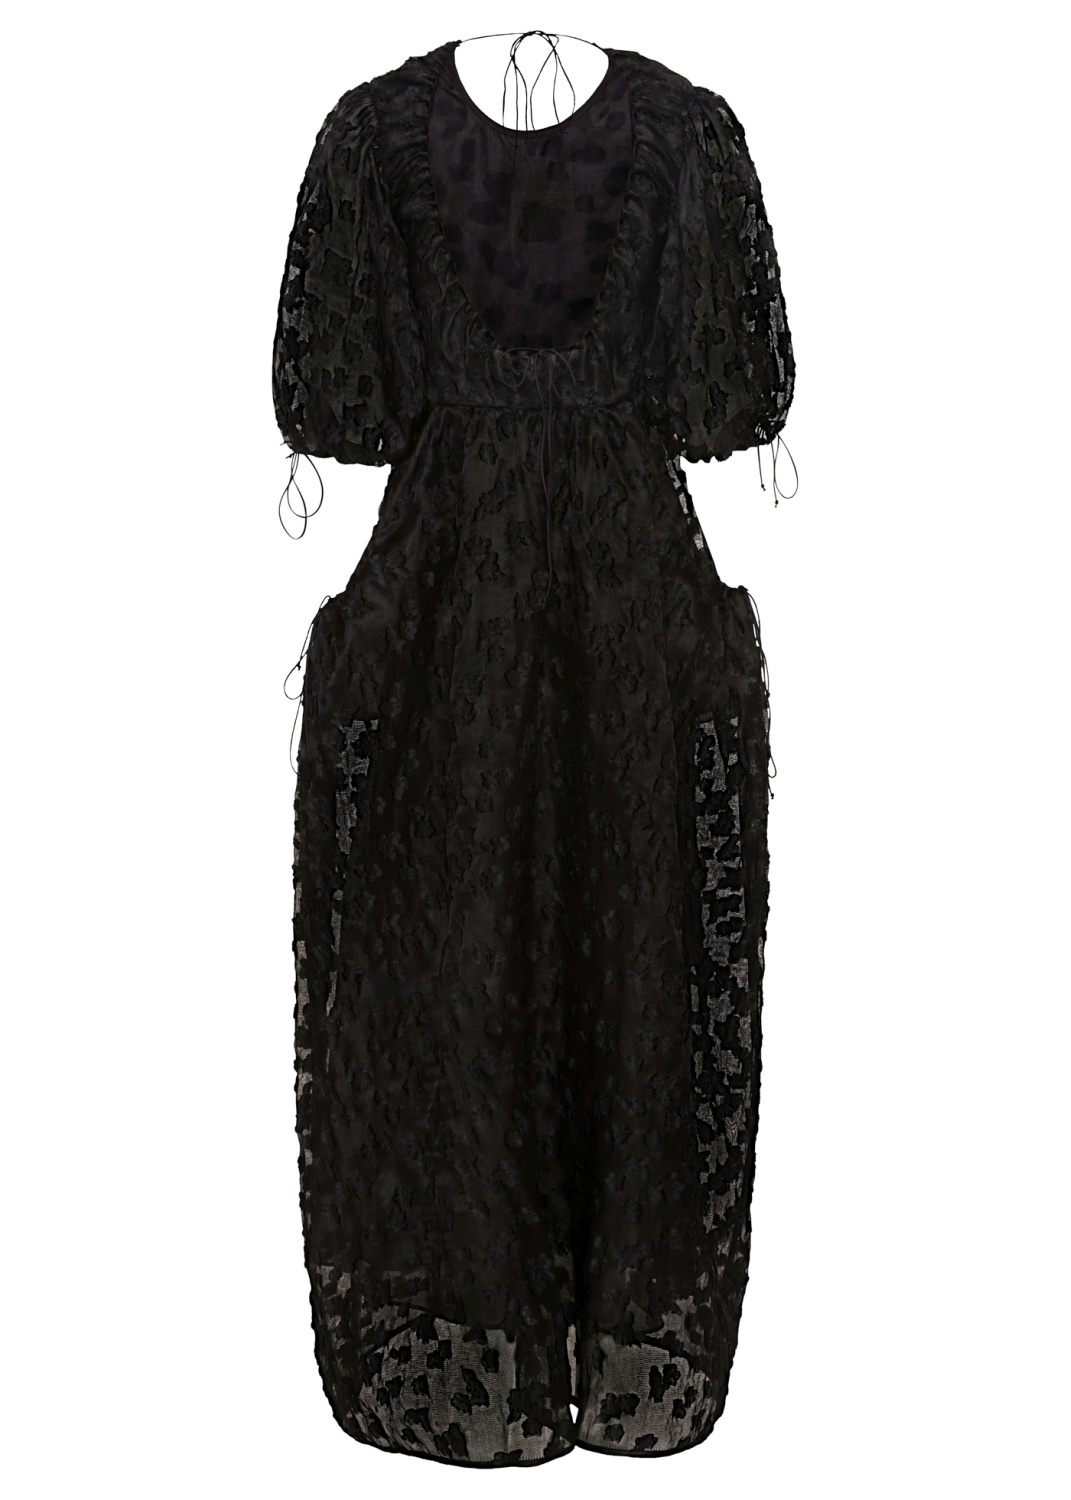 PANELLED GOWN WITH OPEN BACK, Schwarz, large image number 1